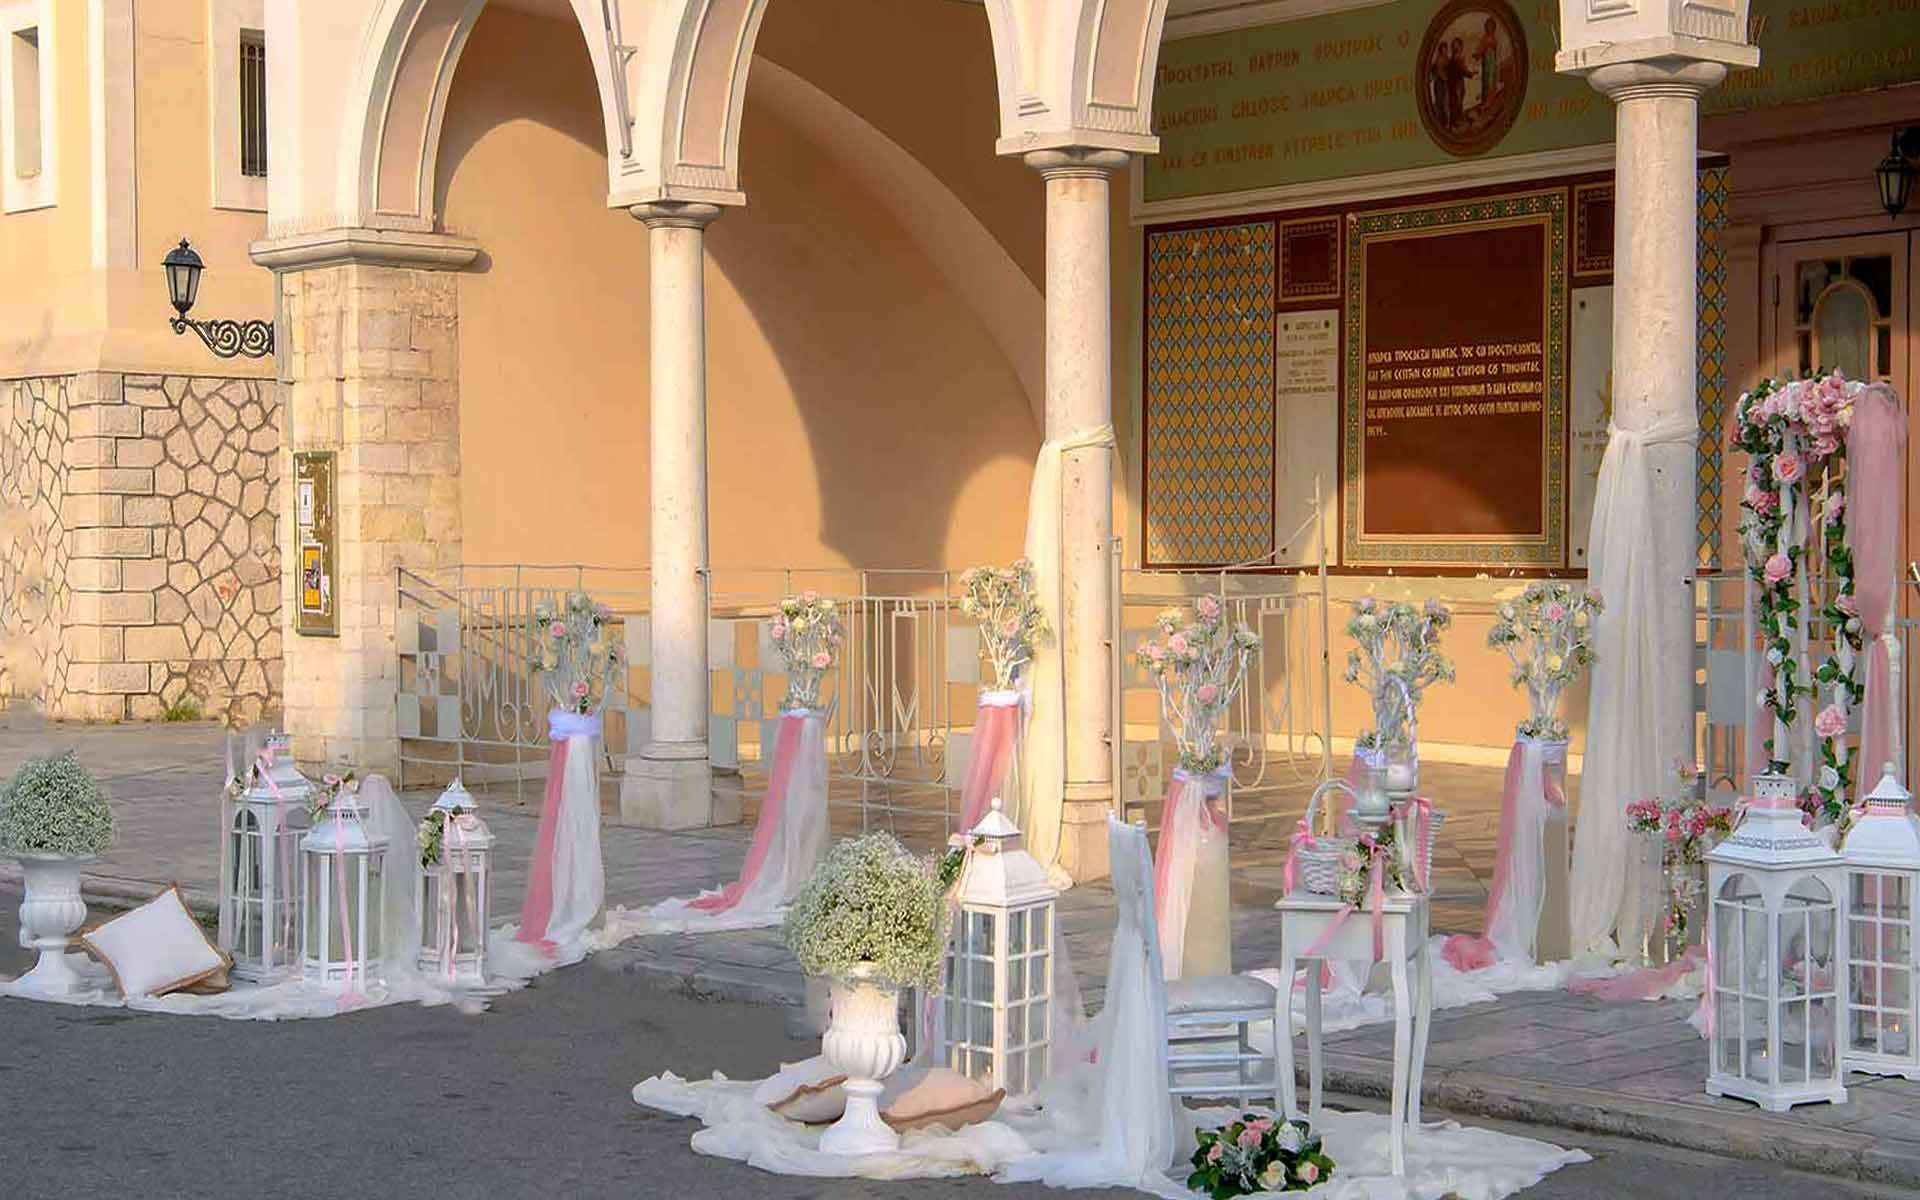 Unique-and-simple-wedding-church-decoration-in-romantic-style-diamond-events-event-planning-services